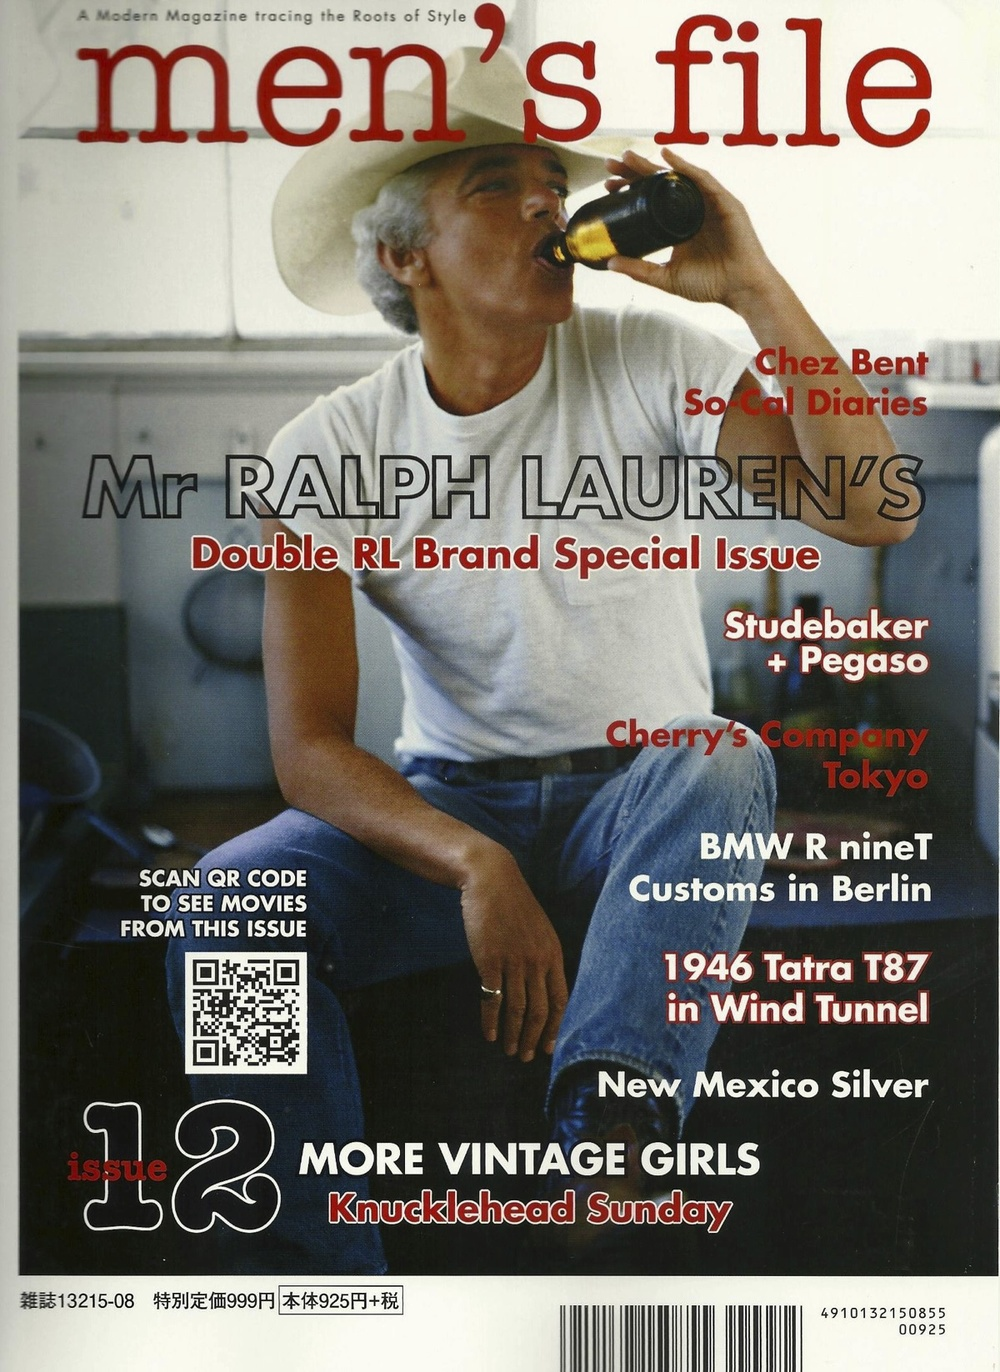 men's file issue 12 copy.jpg